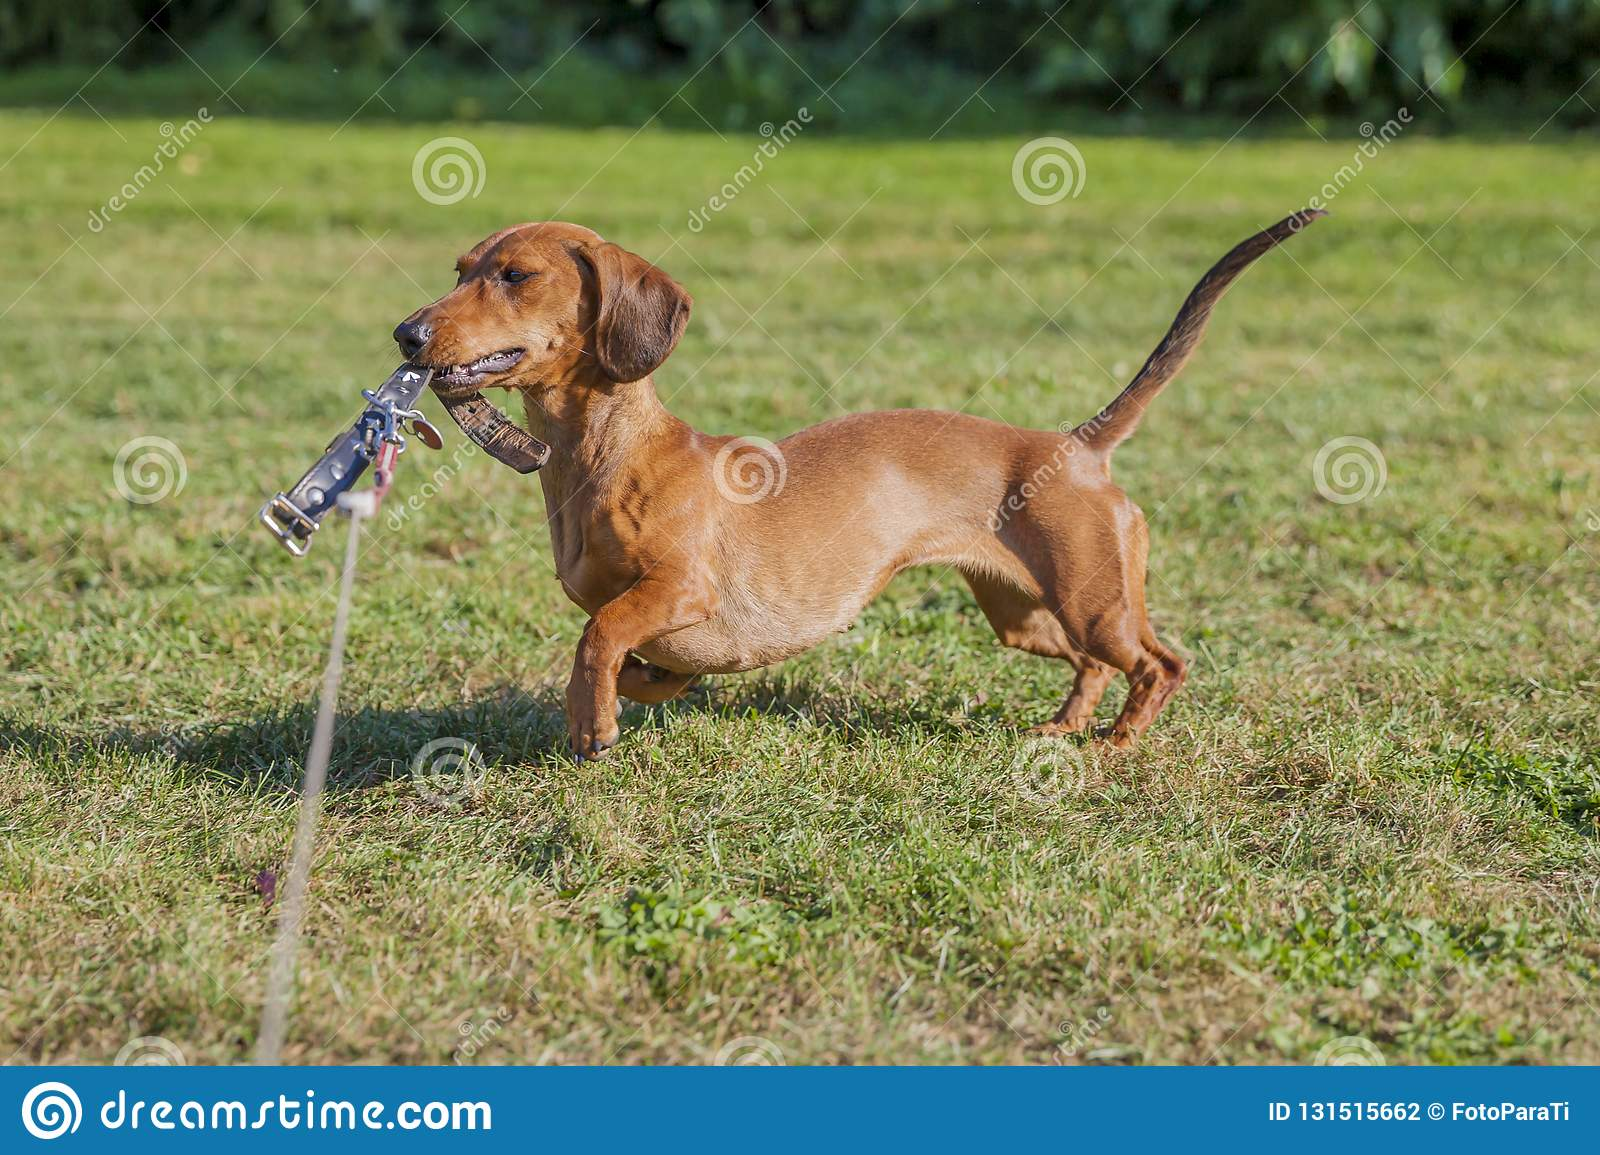 Amazing image of a sausage dog playing with his leash